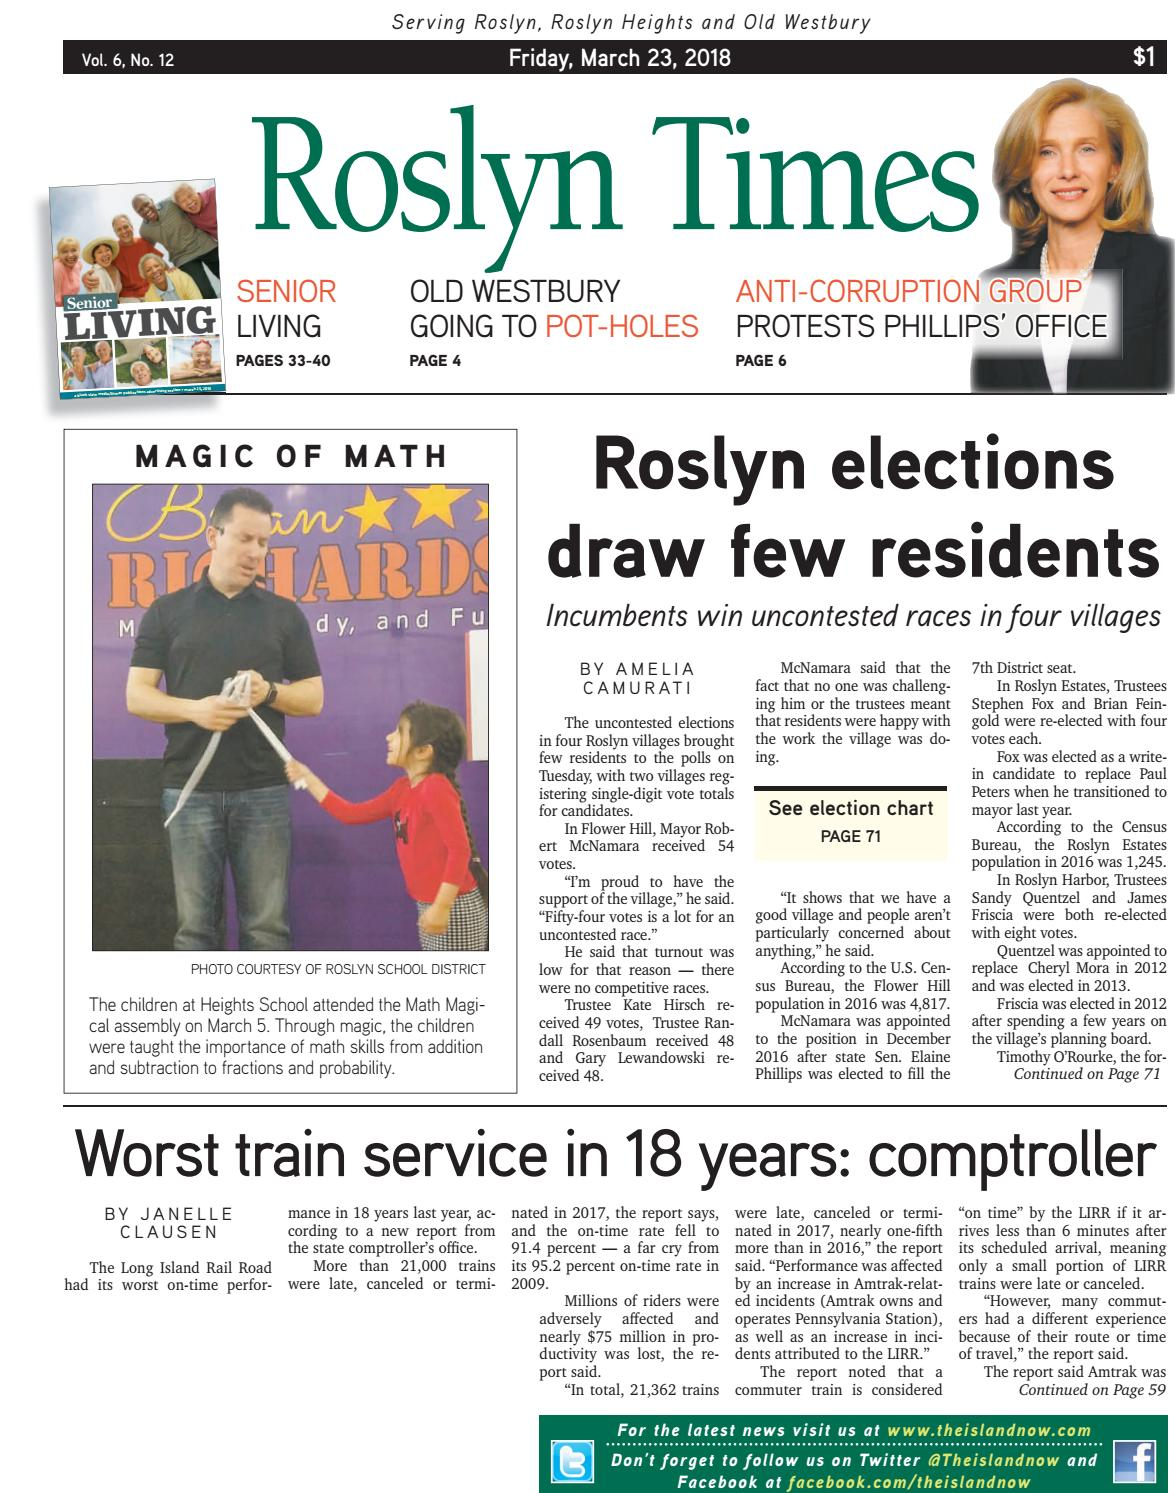 Roslyn 2018 03 23 by The Island Now - issuu